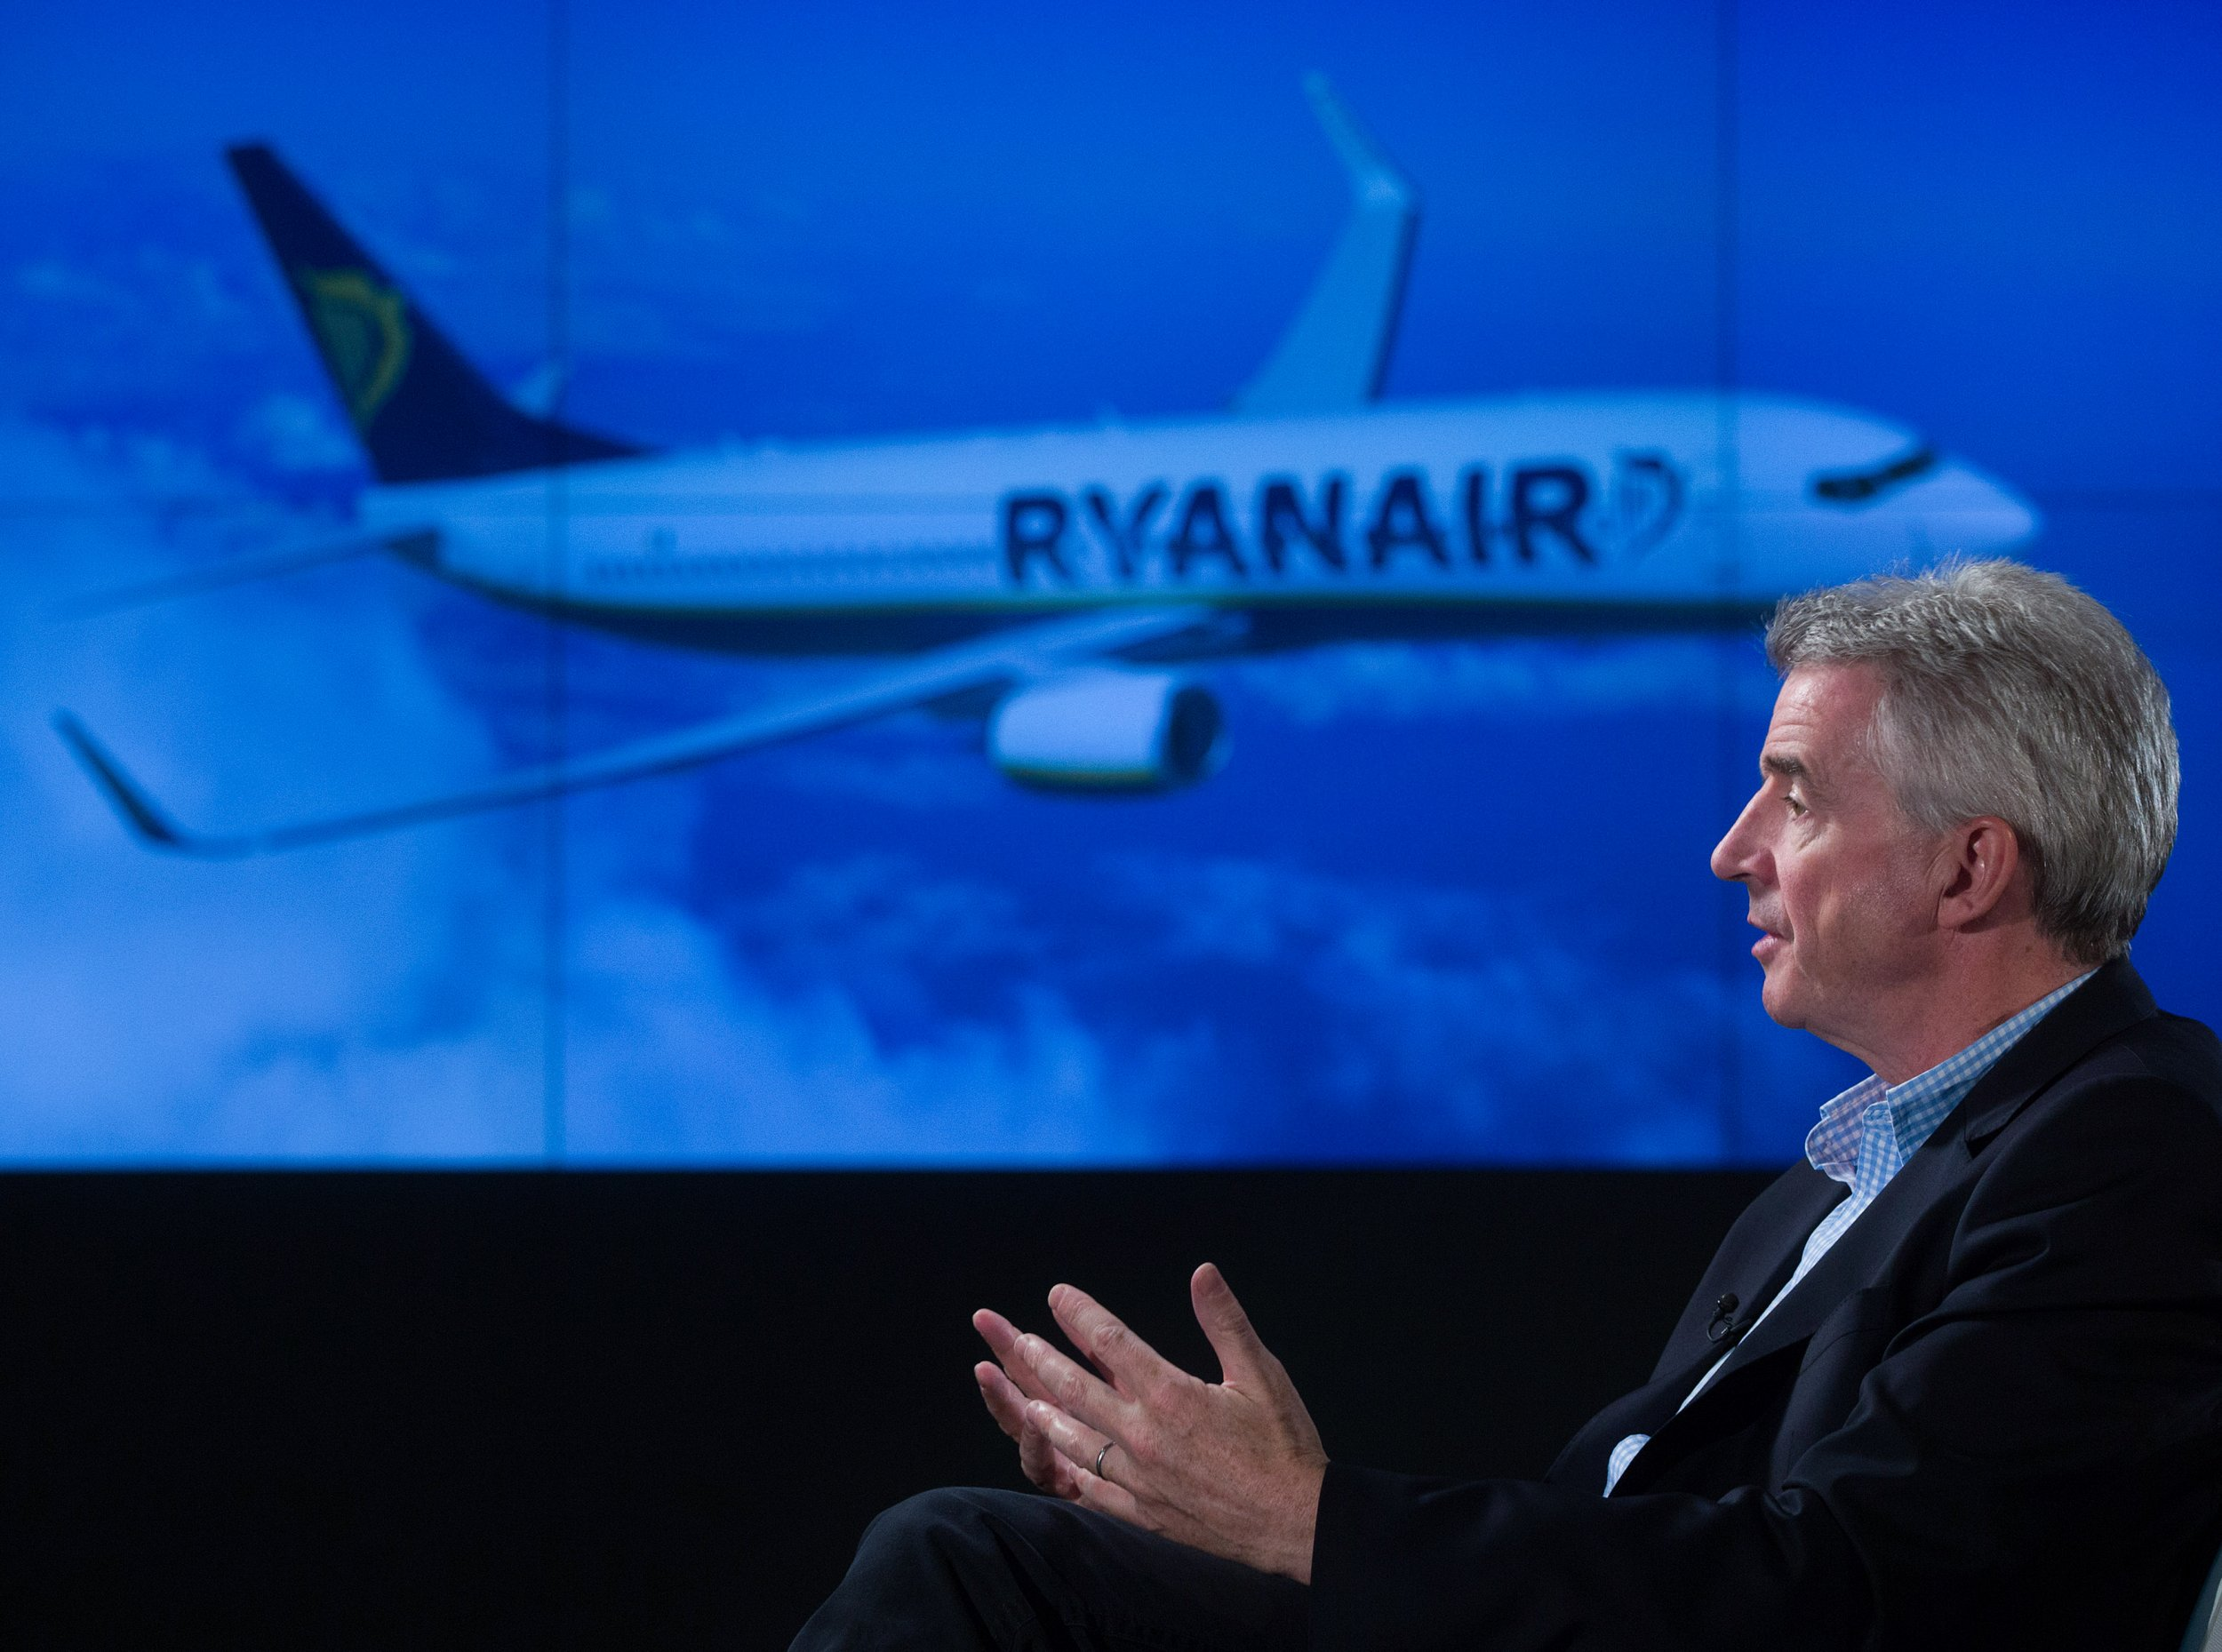 This is what Ryanair and Wetherspoons customers think of Brexit Credit: Getty. Michael O'Leary, chief executive officer of Ryanair Holdings Plc, gestures whilst speaking during a Bloomberg Television interview in London, U.K., on Tuesday, April 19, 2016. Ryanair is battling lower fares in the first months of its financial year, weighed down by French air-traffic controller strikes and by travelers' concerns about a future terrorist incident following last month's bombings in Brussels. Photographer: Simon Dawson/Bloomberg via Getty Images